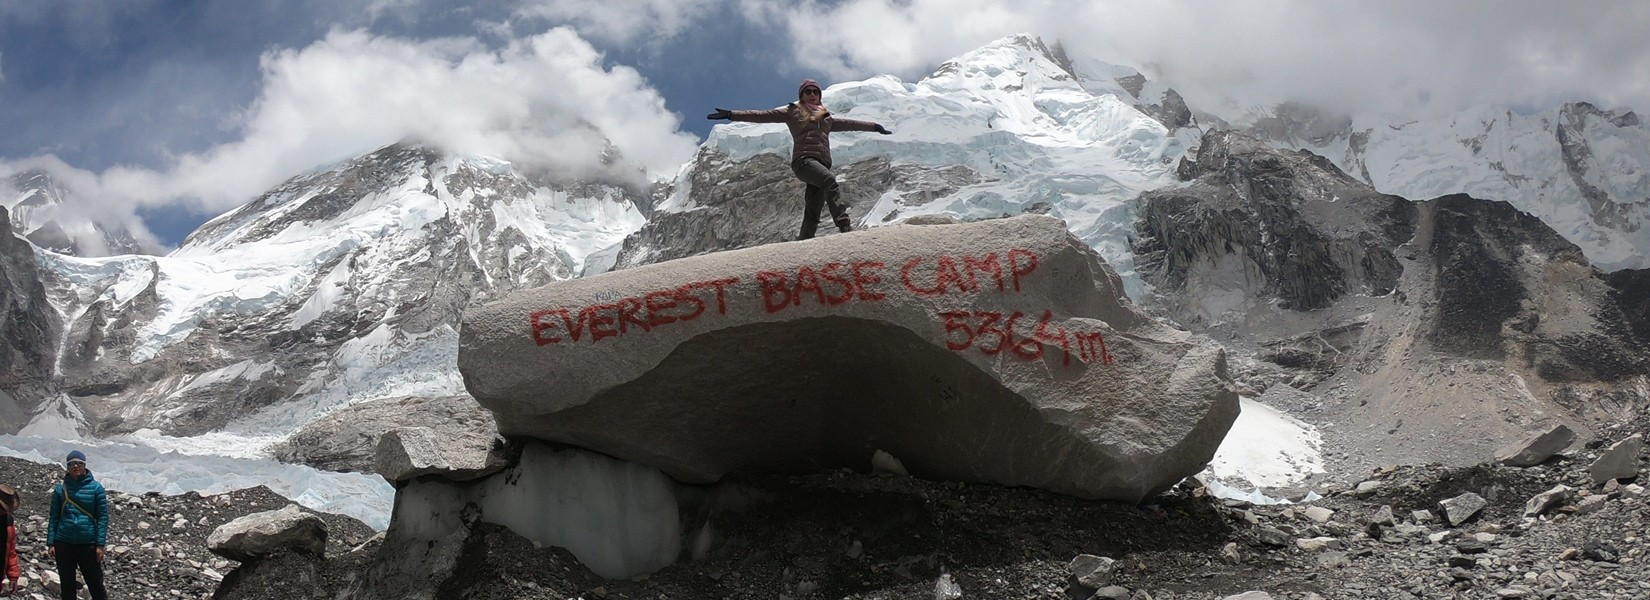 most helpful everest base camp trek questions with answers